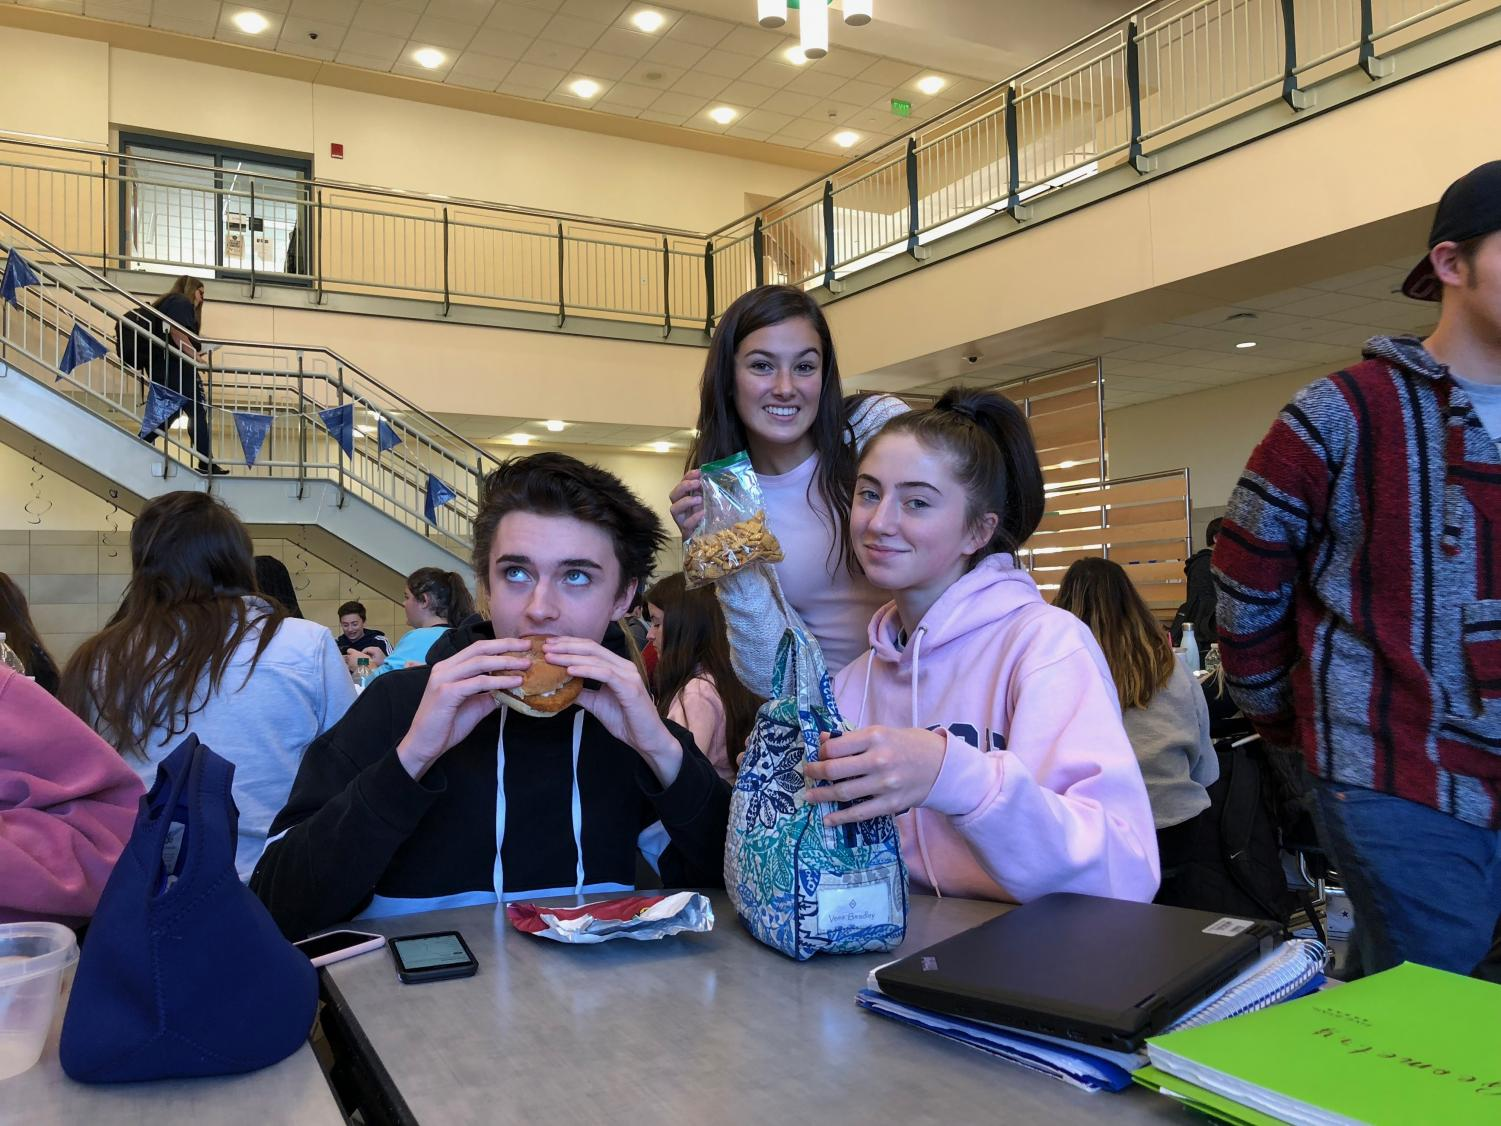 Jason Dole '21 enjoying cafeteria lunch, alongside classmates Lyla Blanchard and Aleena Magnasco